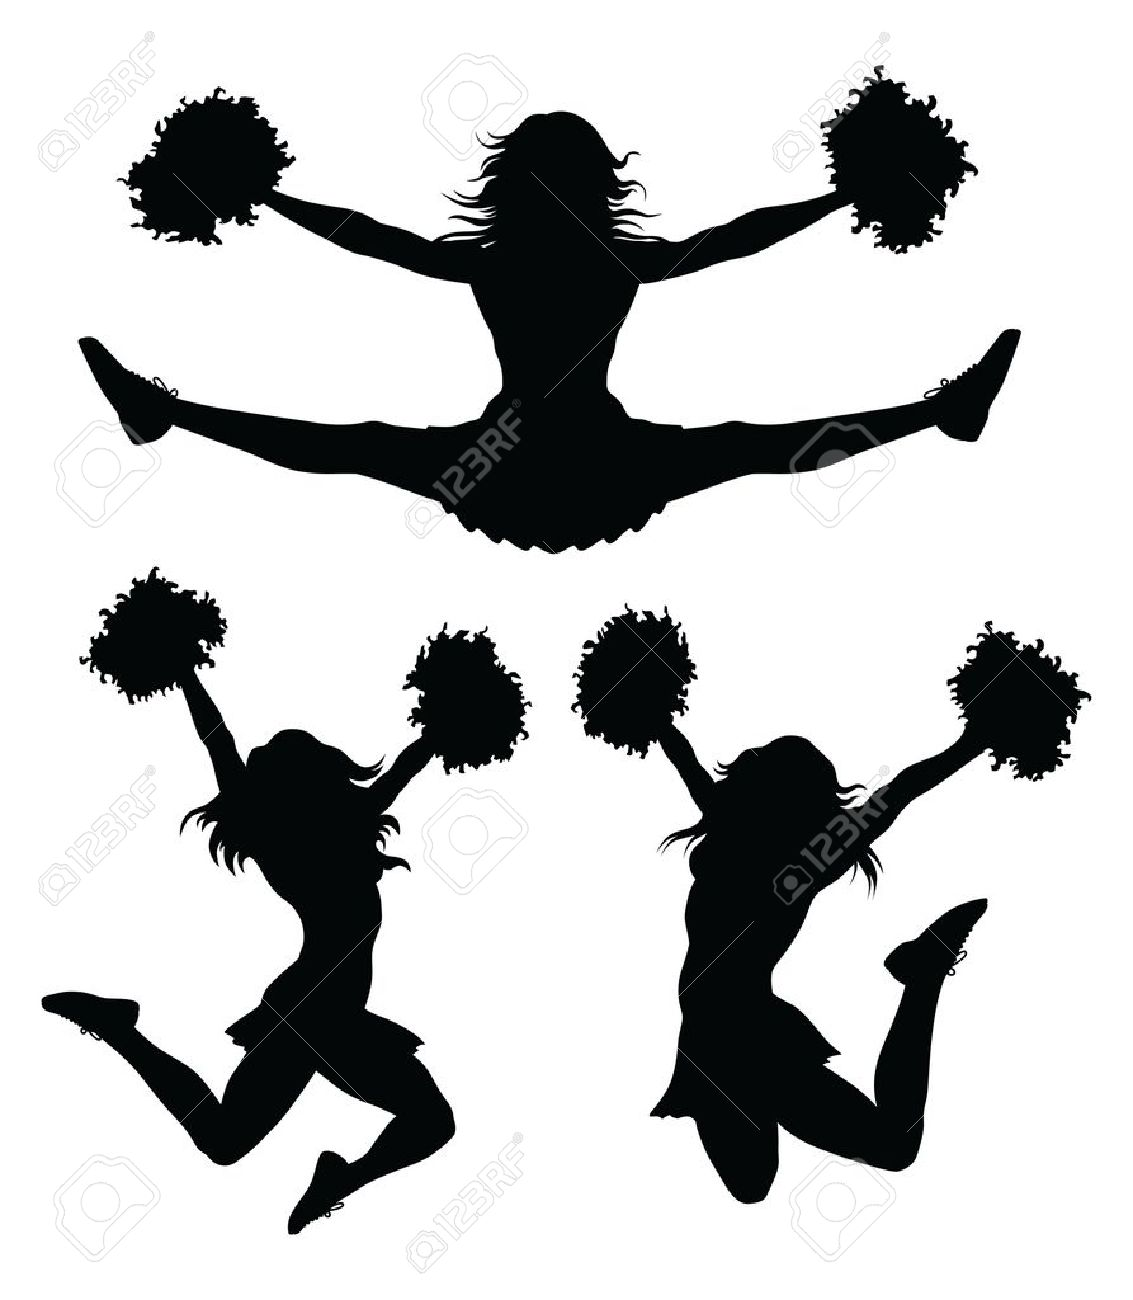 Cheer Jumps Silhouette Clipart